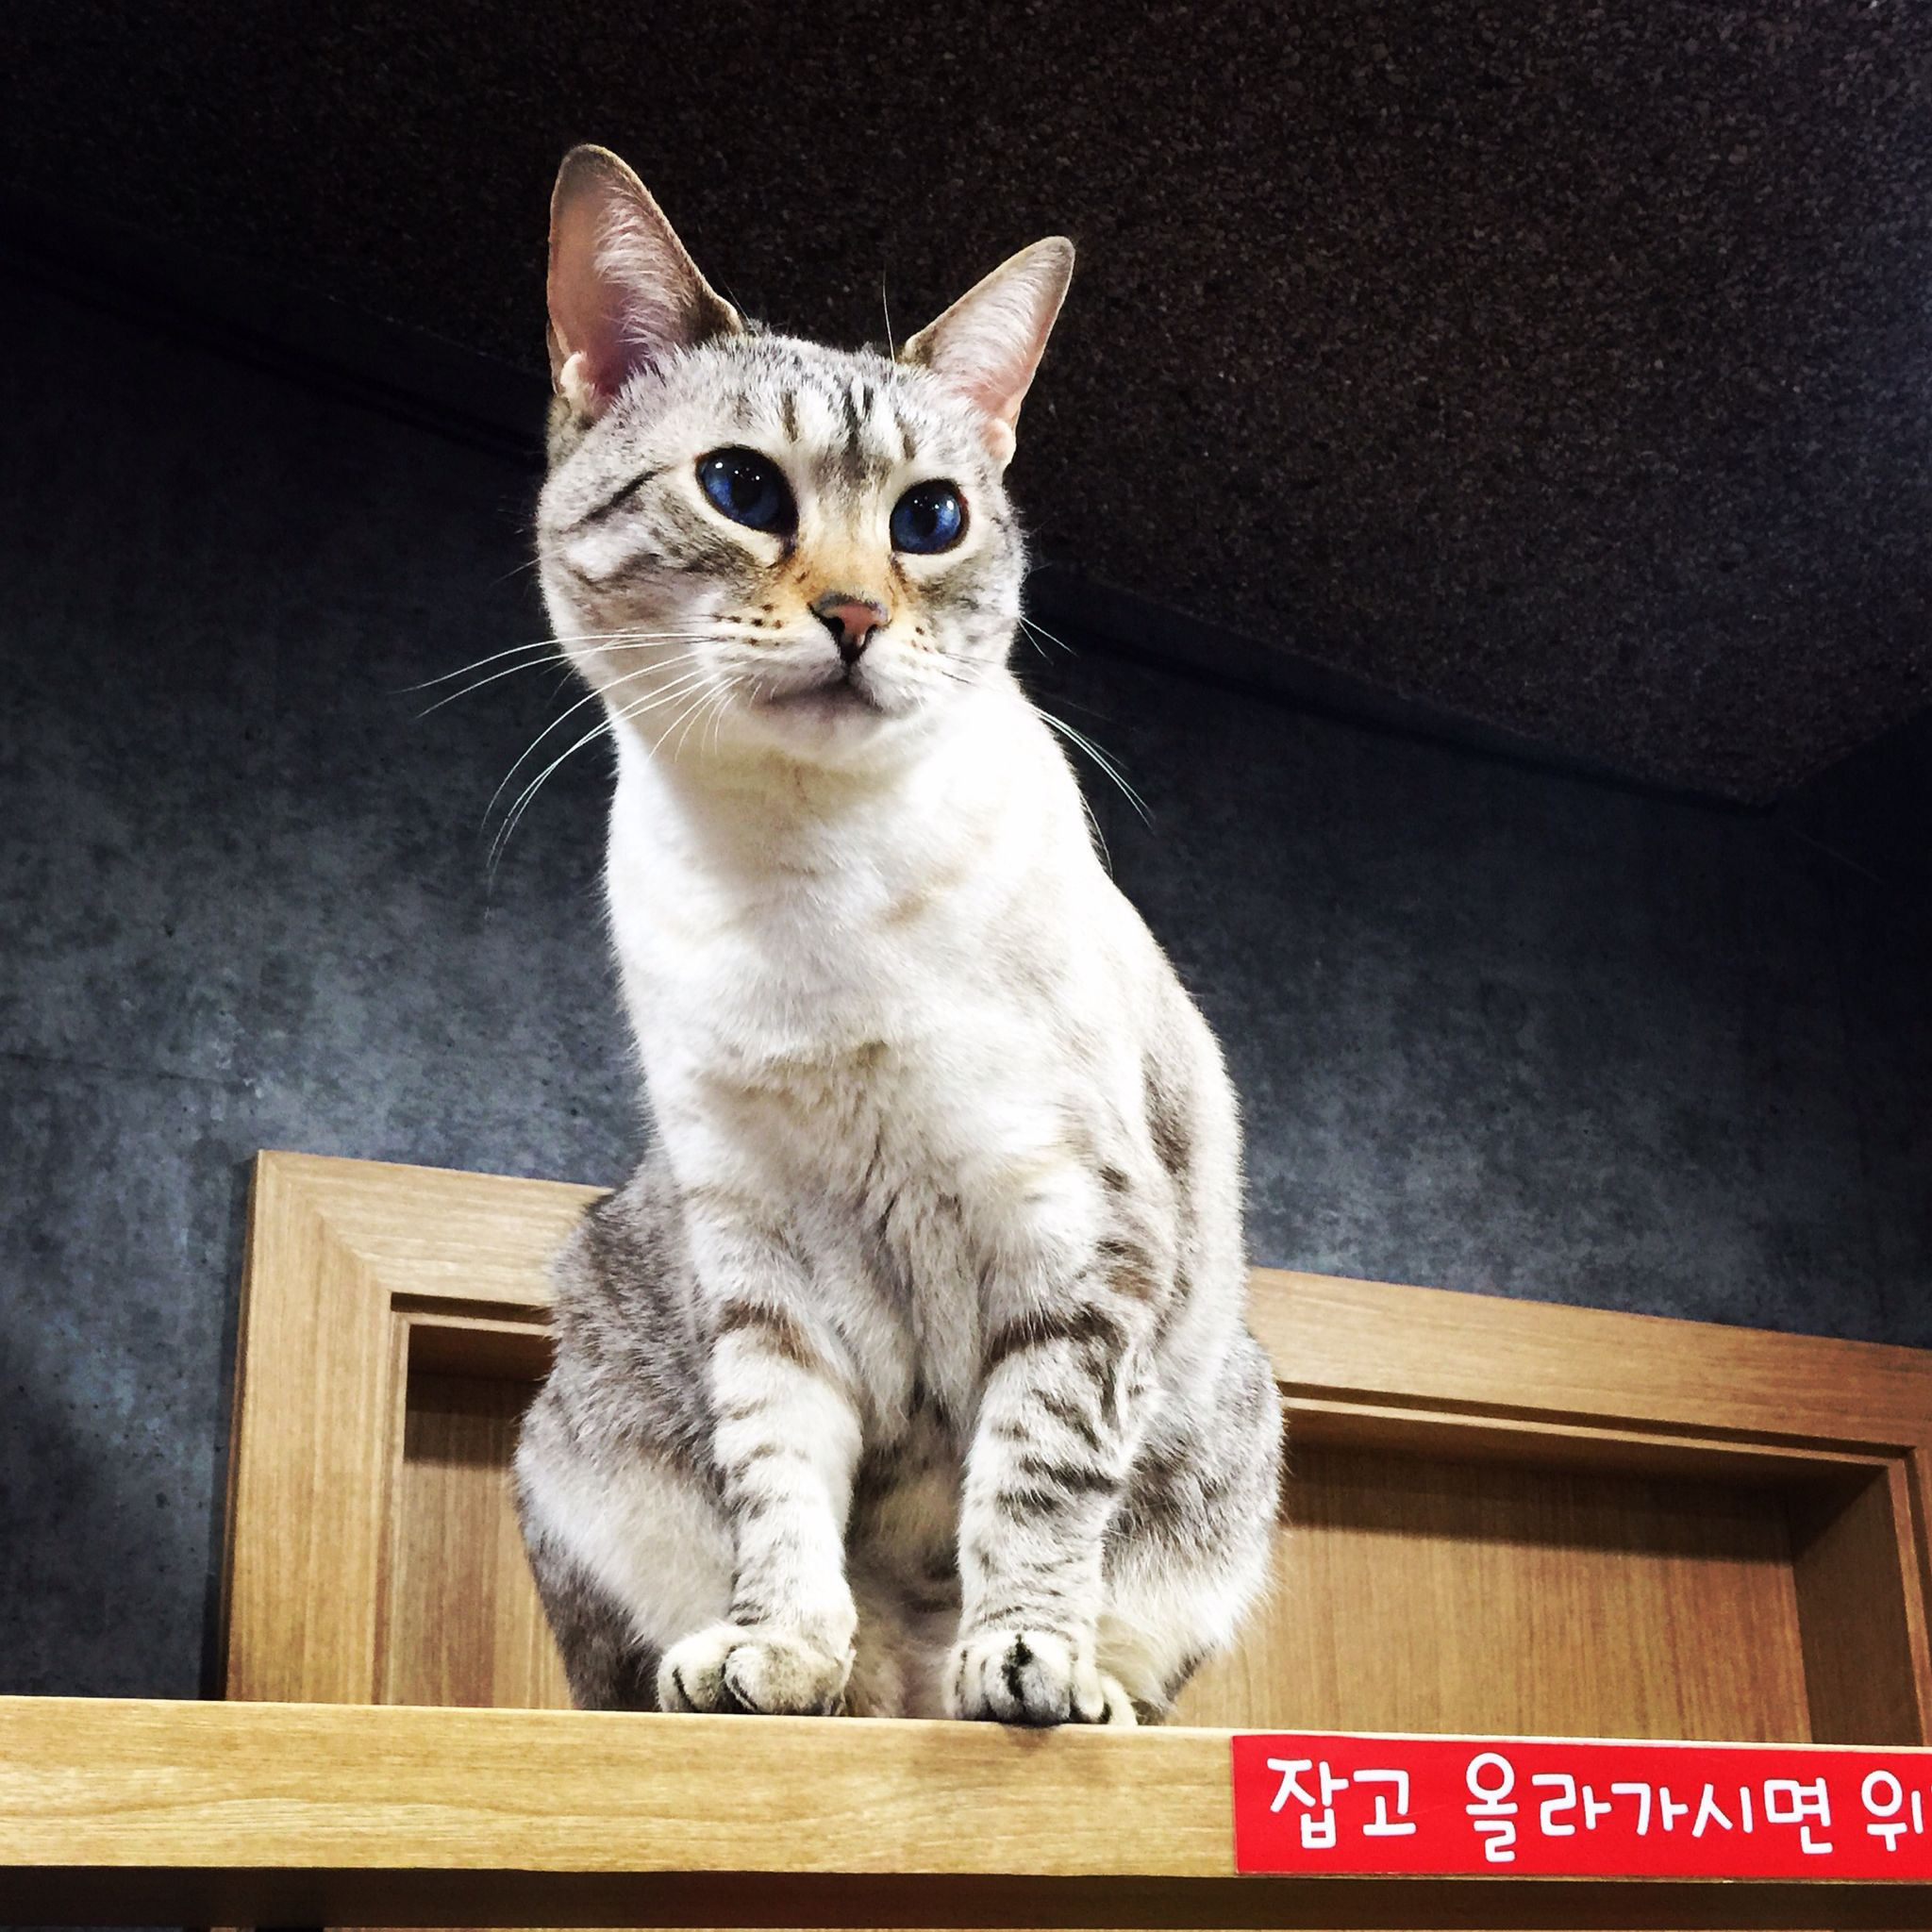 The official greeter at the Cat Cafe in Seoul, South Korea